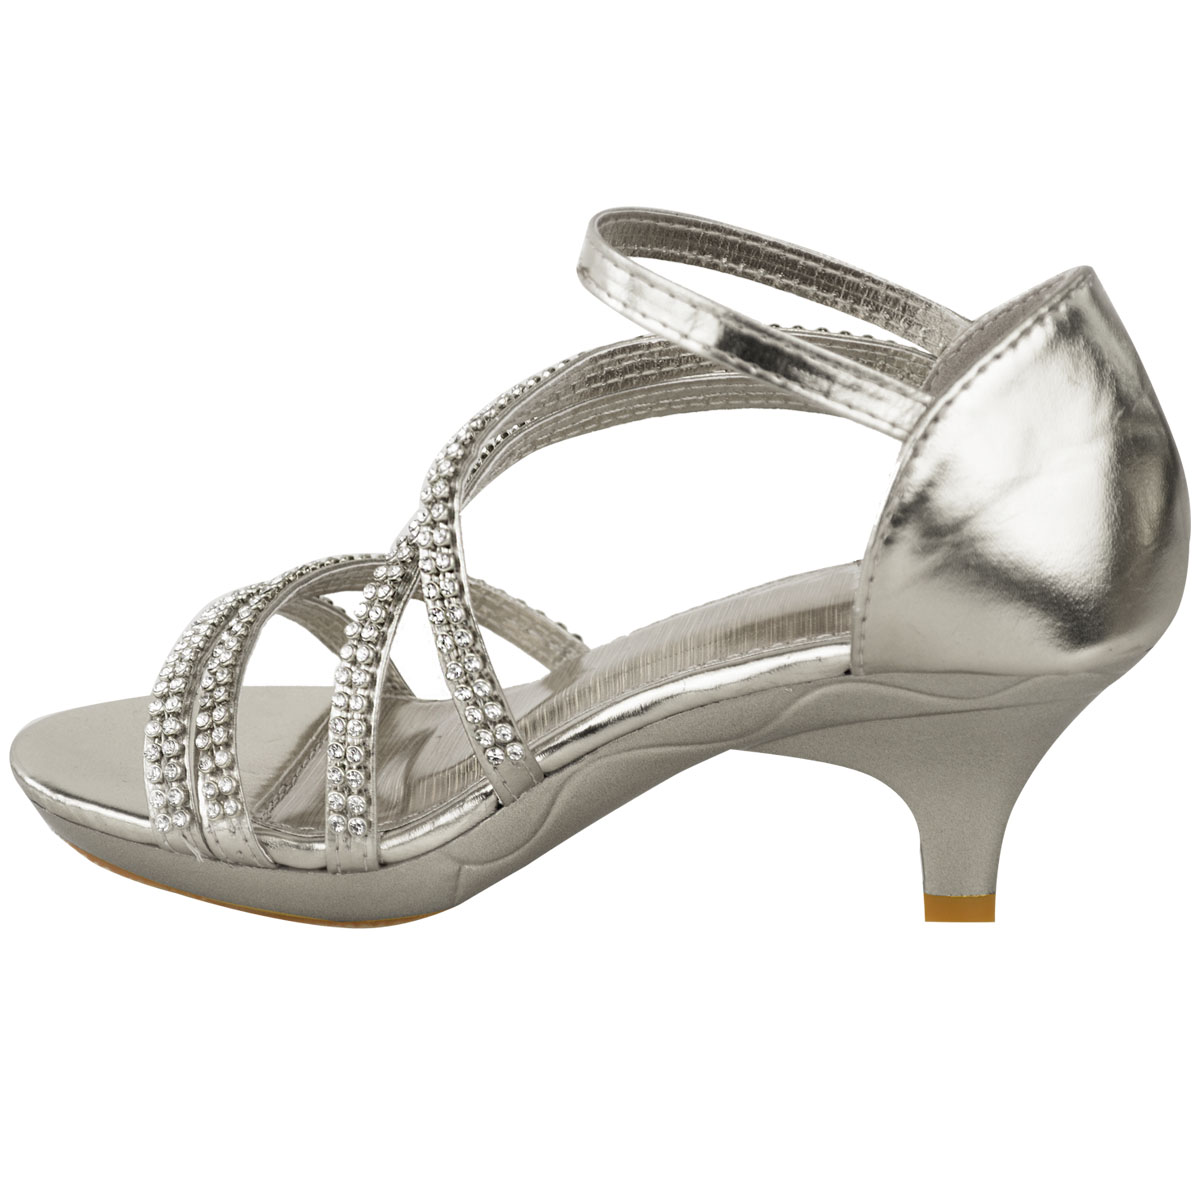 Details about Girls Kids Childrens Low Heel Party Wedding Mary Jane Sparkly Sandals Shoes Size